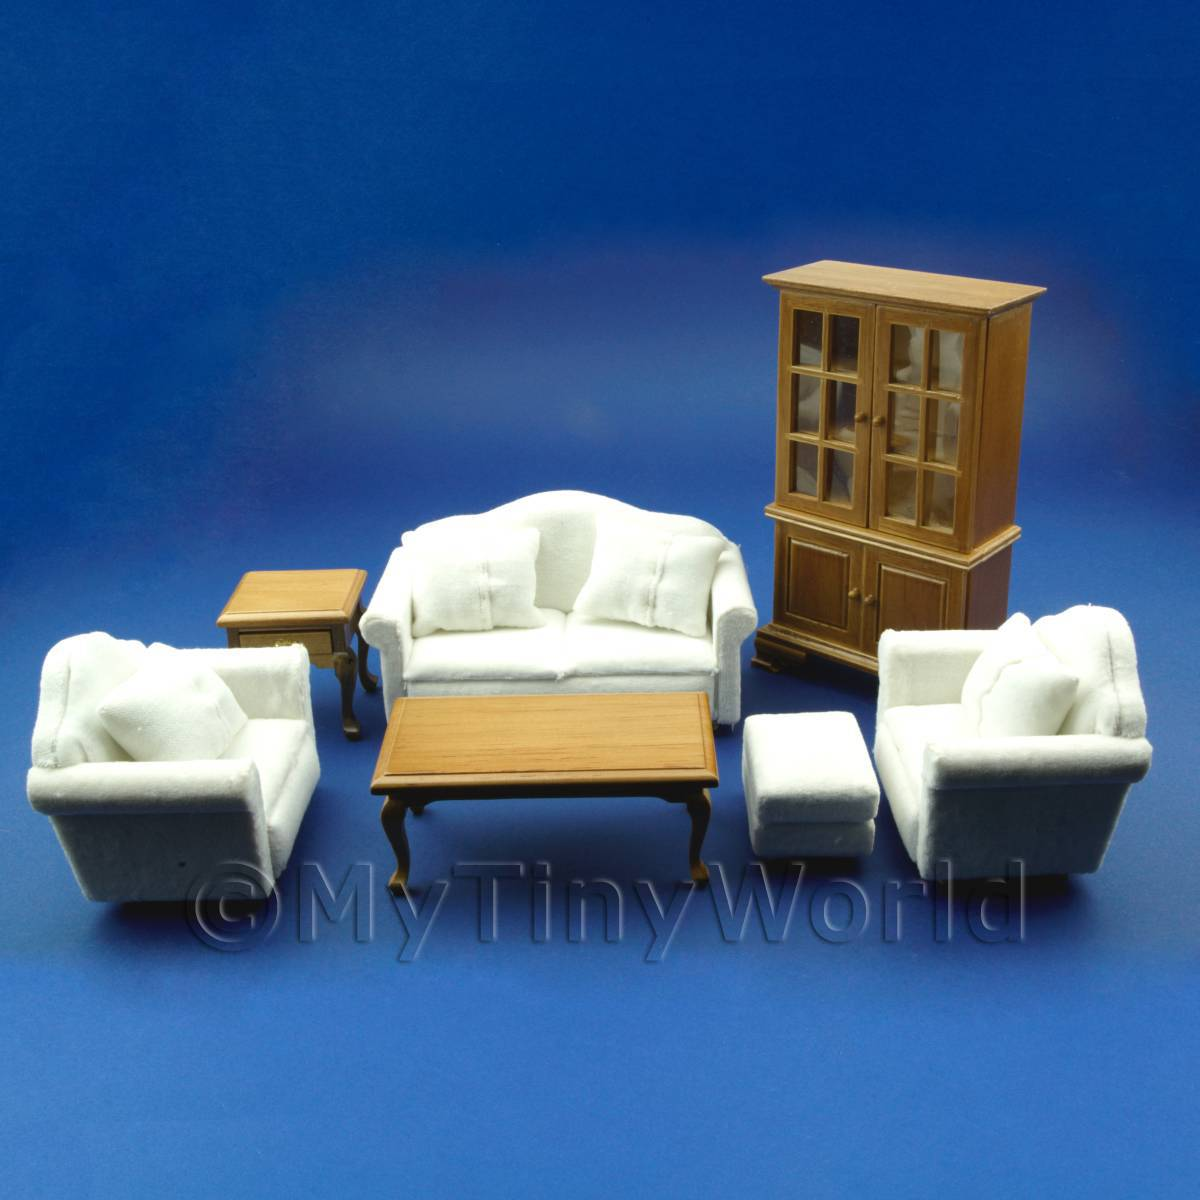 7 Piece Dolls House Miniature White Living Room Set